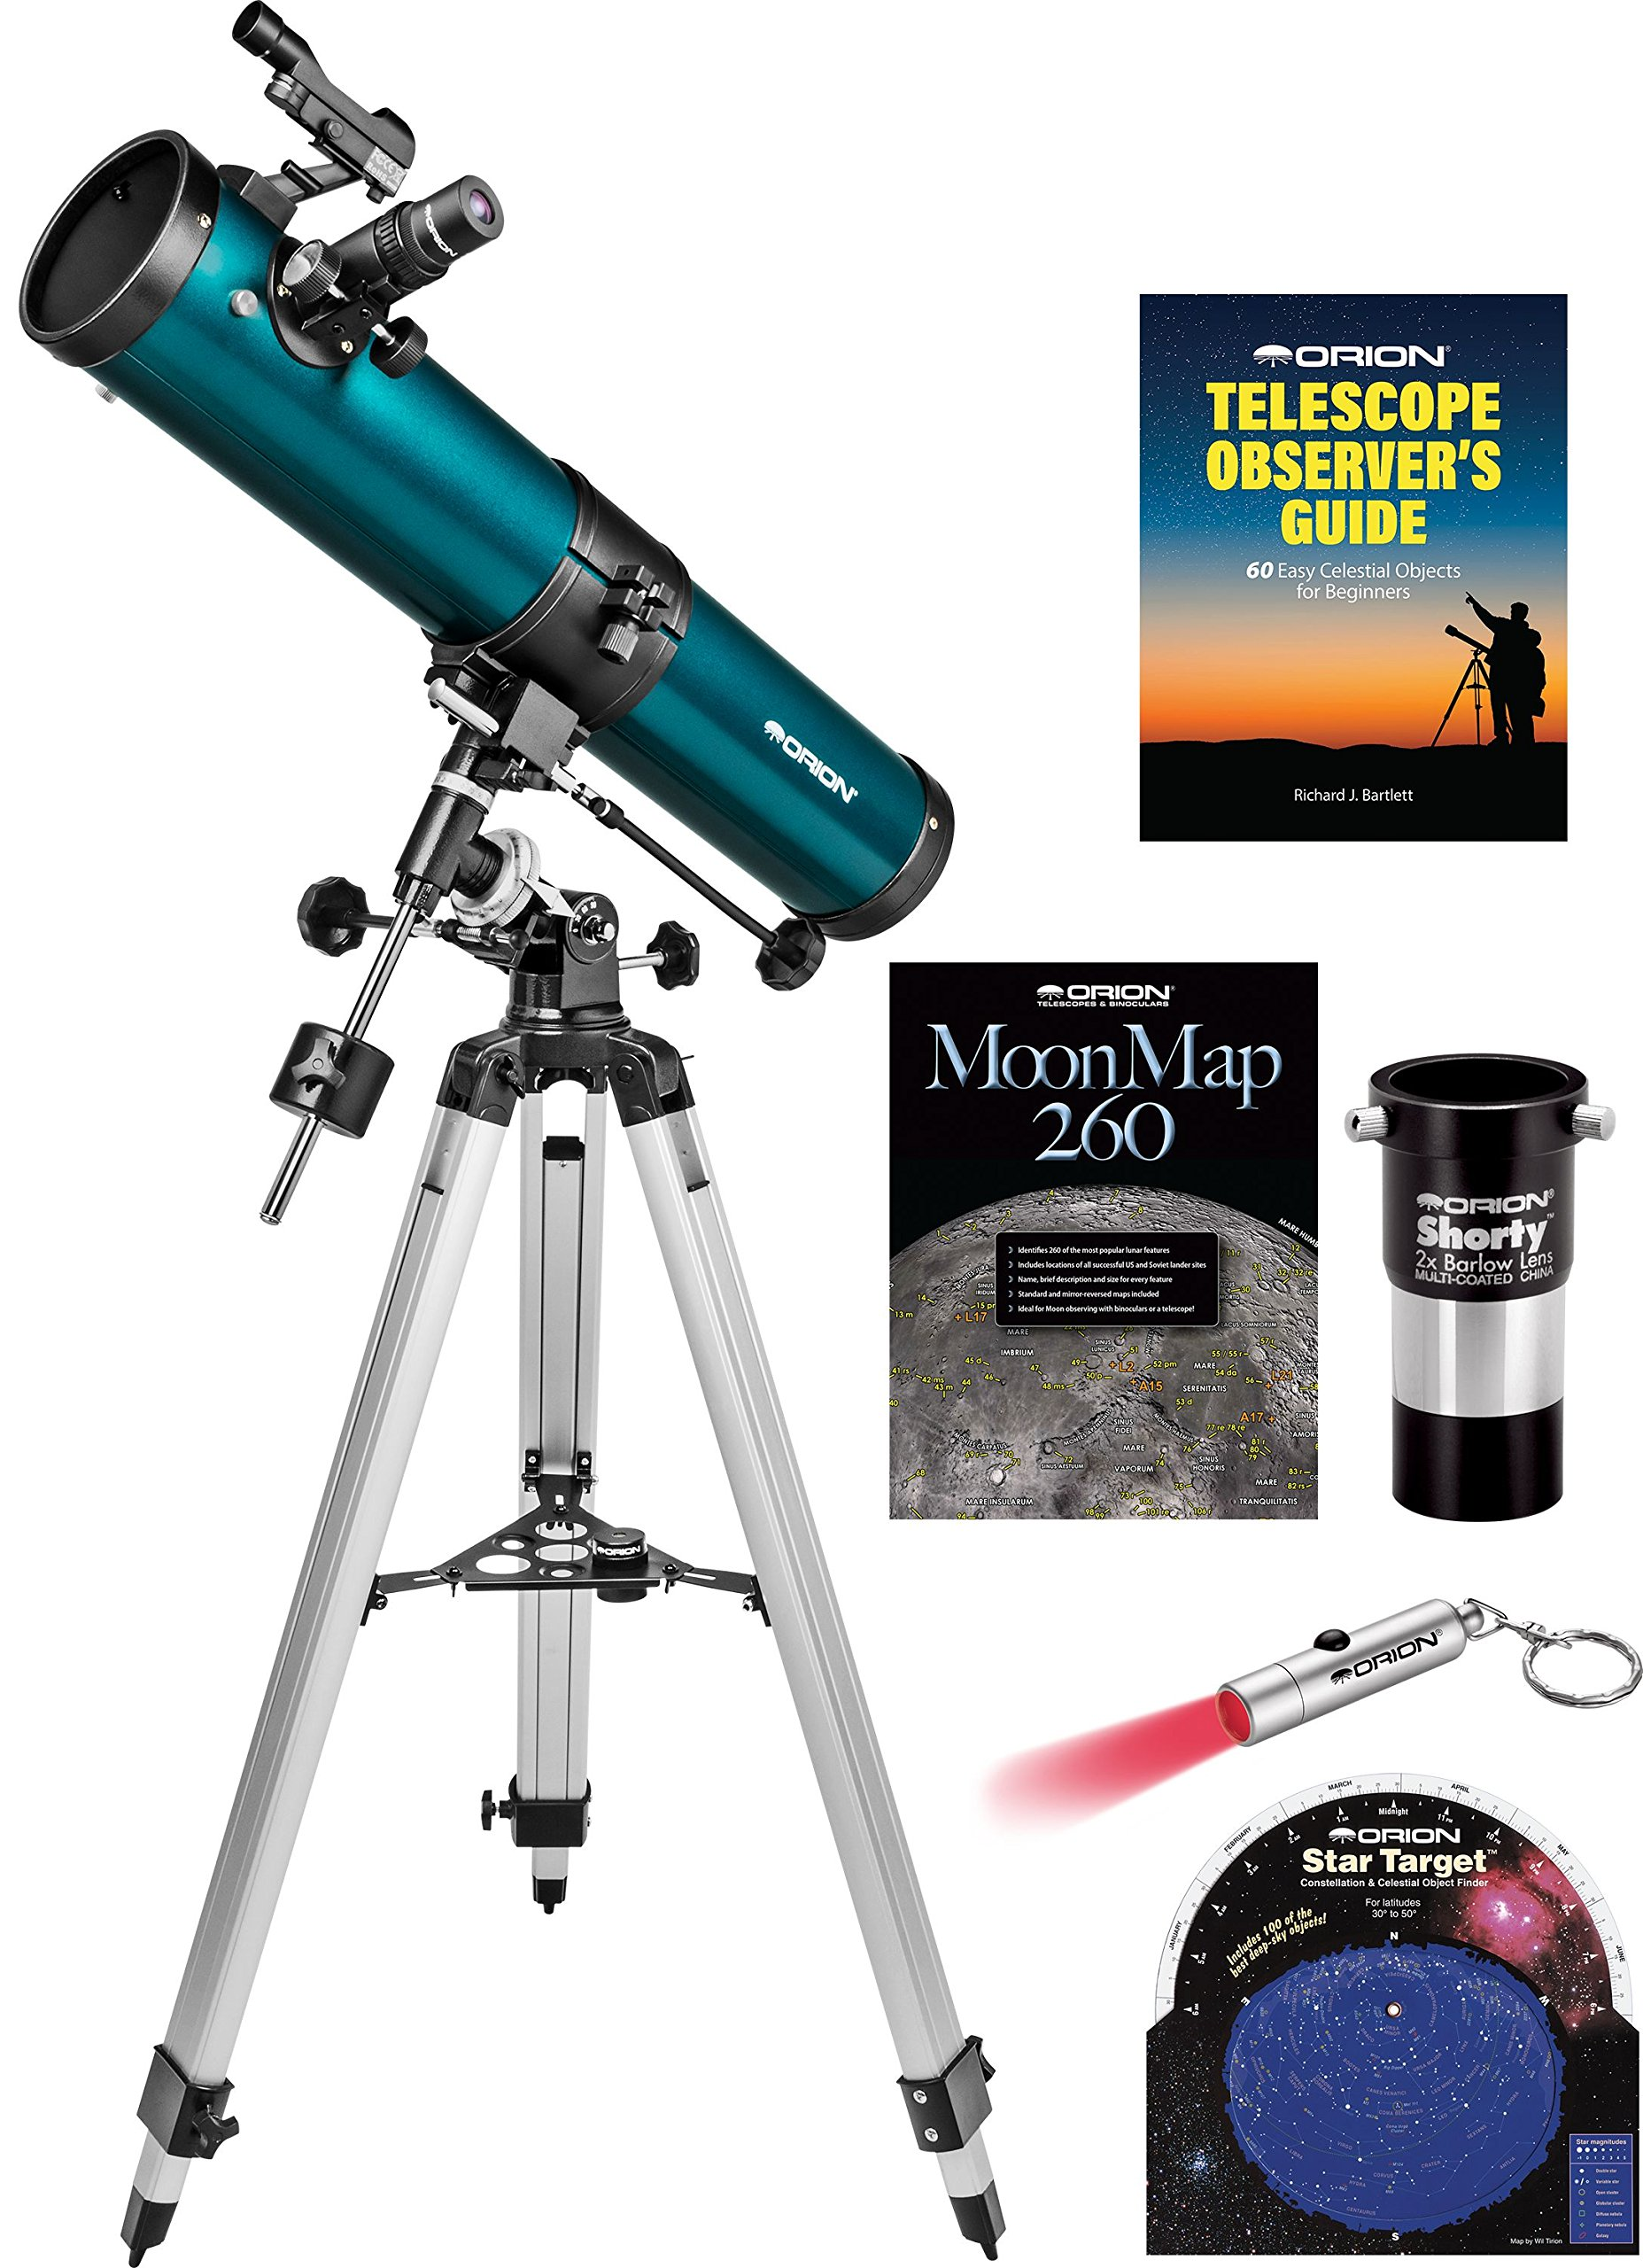 Orion SpaceProbe II 76mm Equatorial Reflector Telescope Kit by Orion (Image #1)